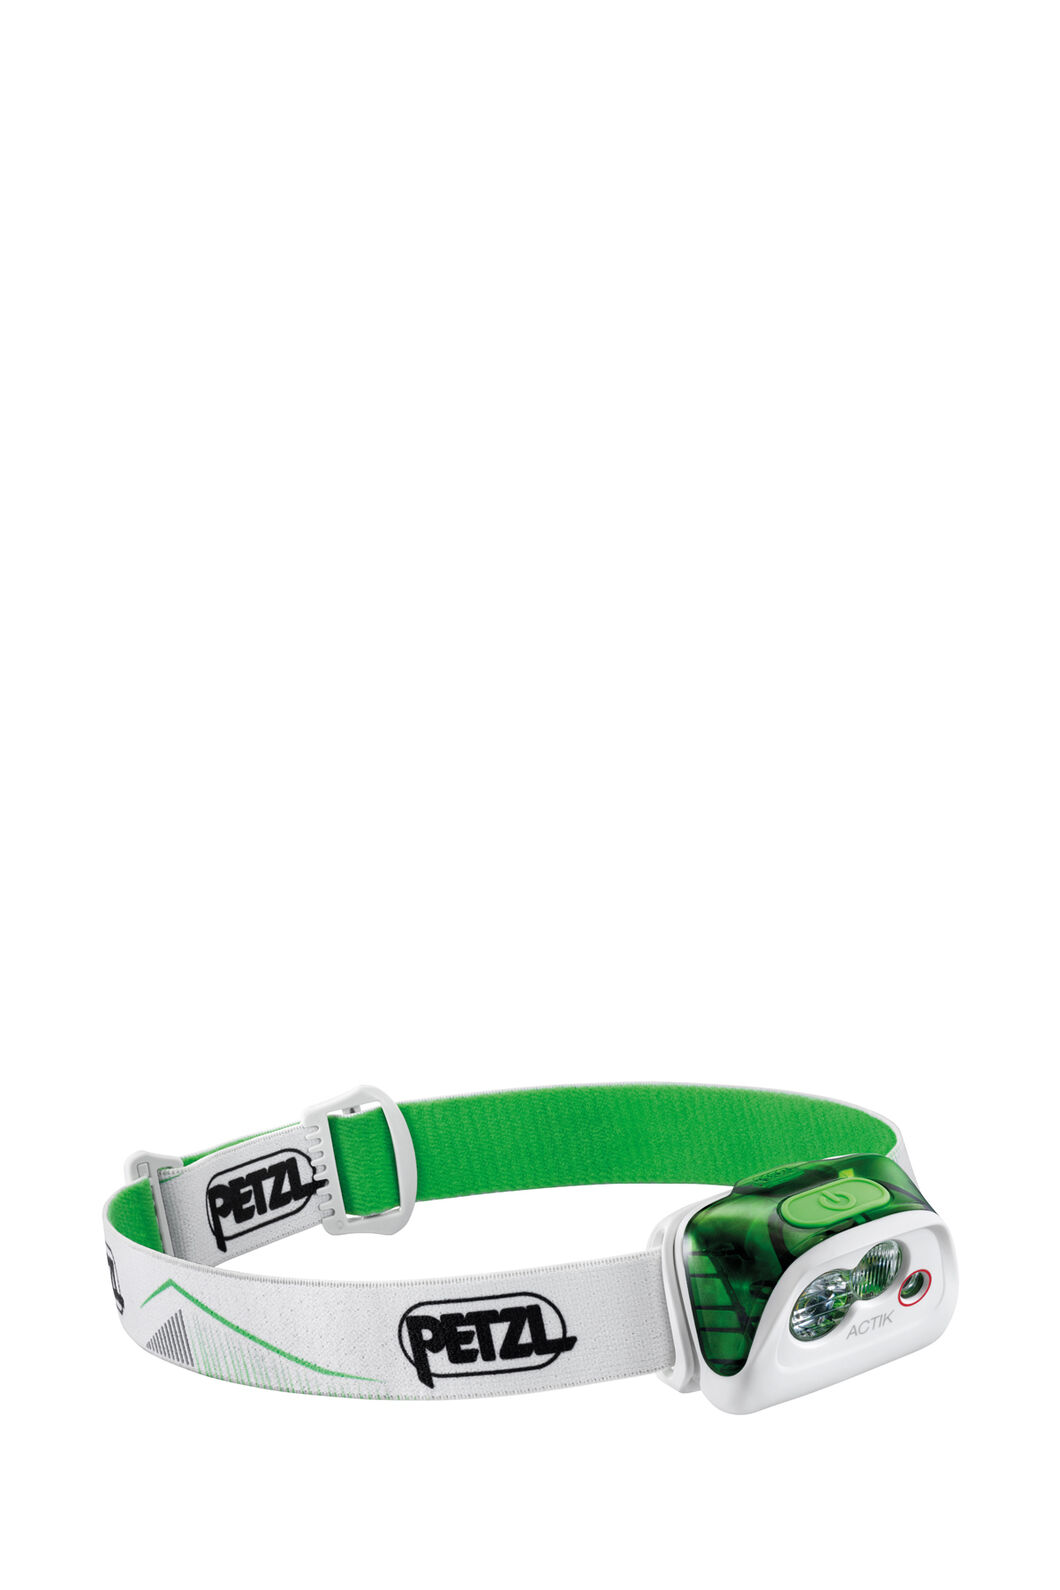 Petzl Actik Head Torch, Green, hi-res